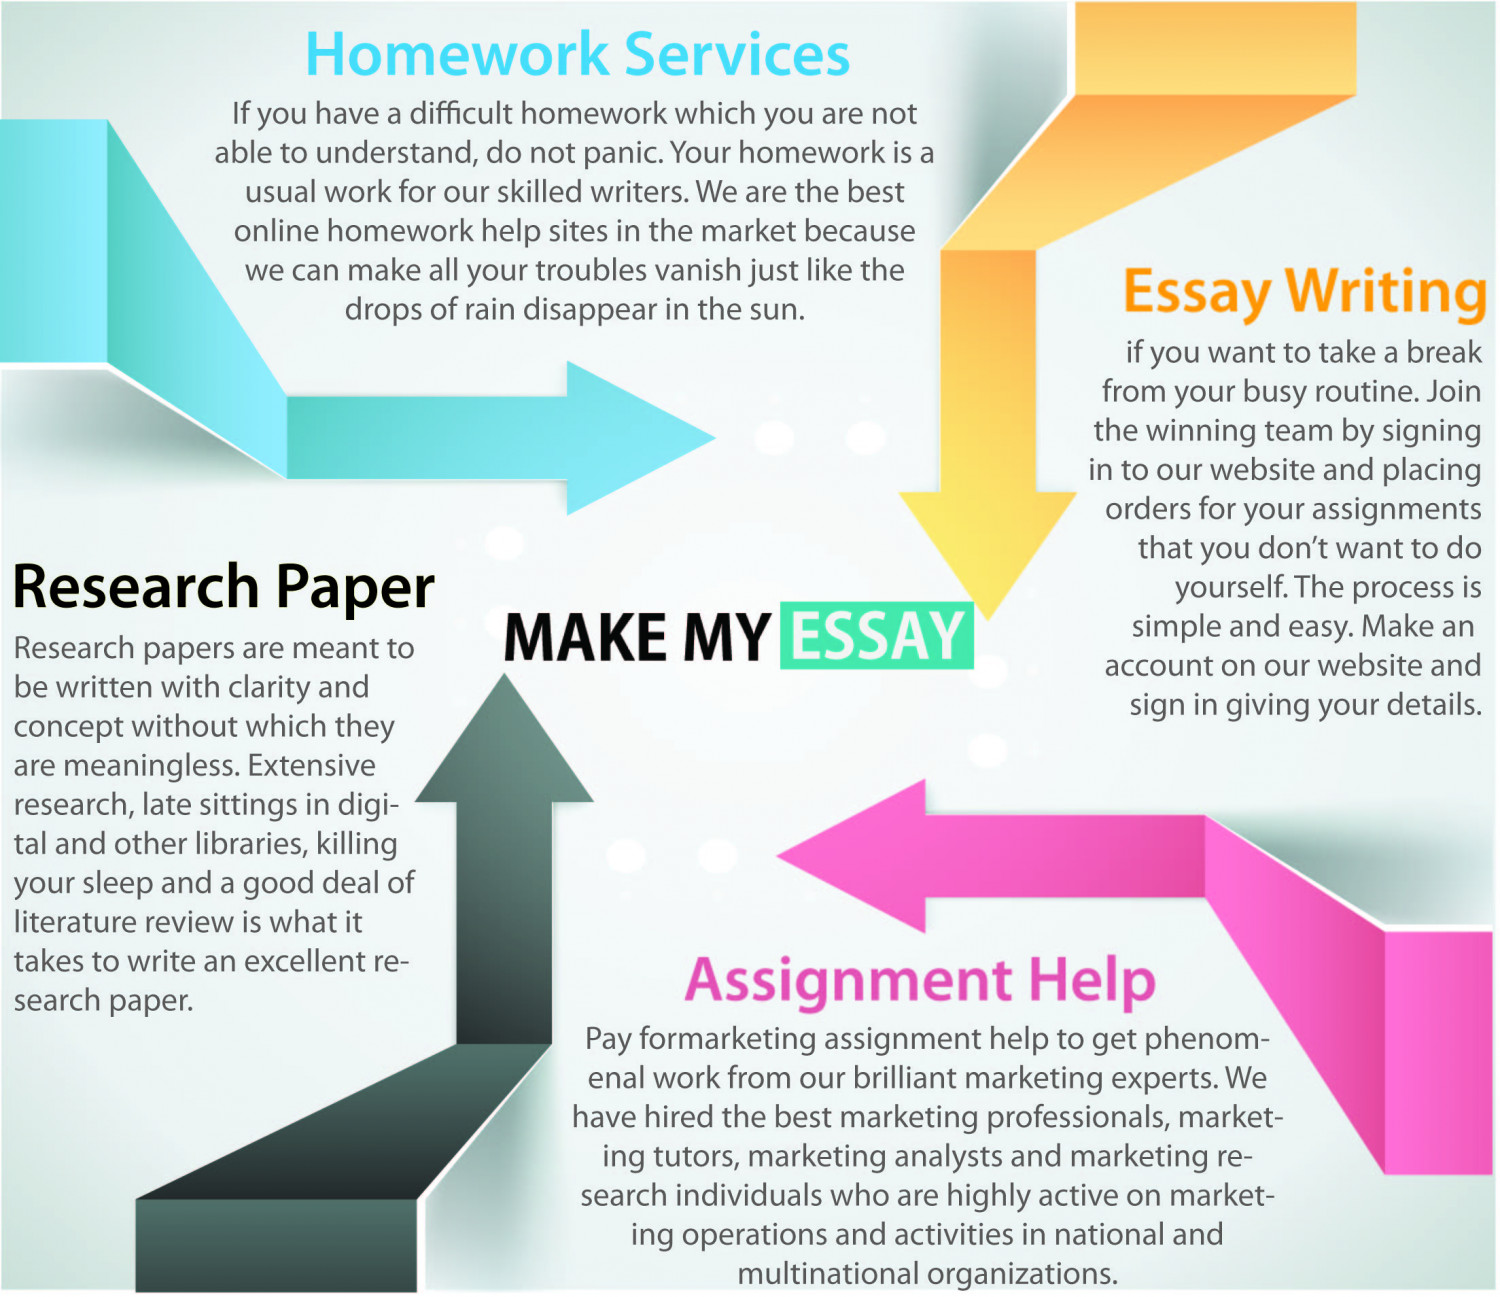 spend to help you be able to write dissertation projects